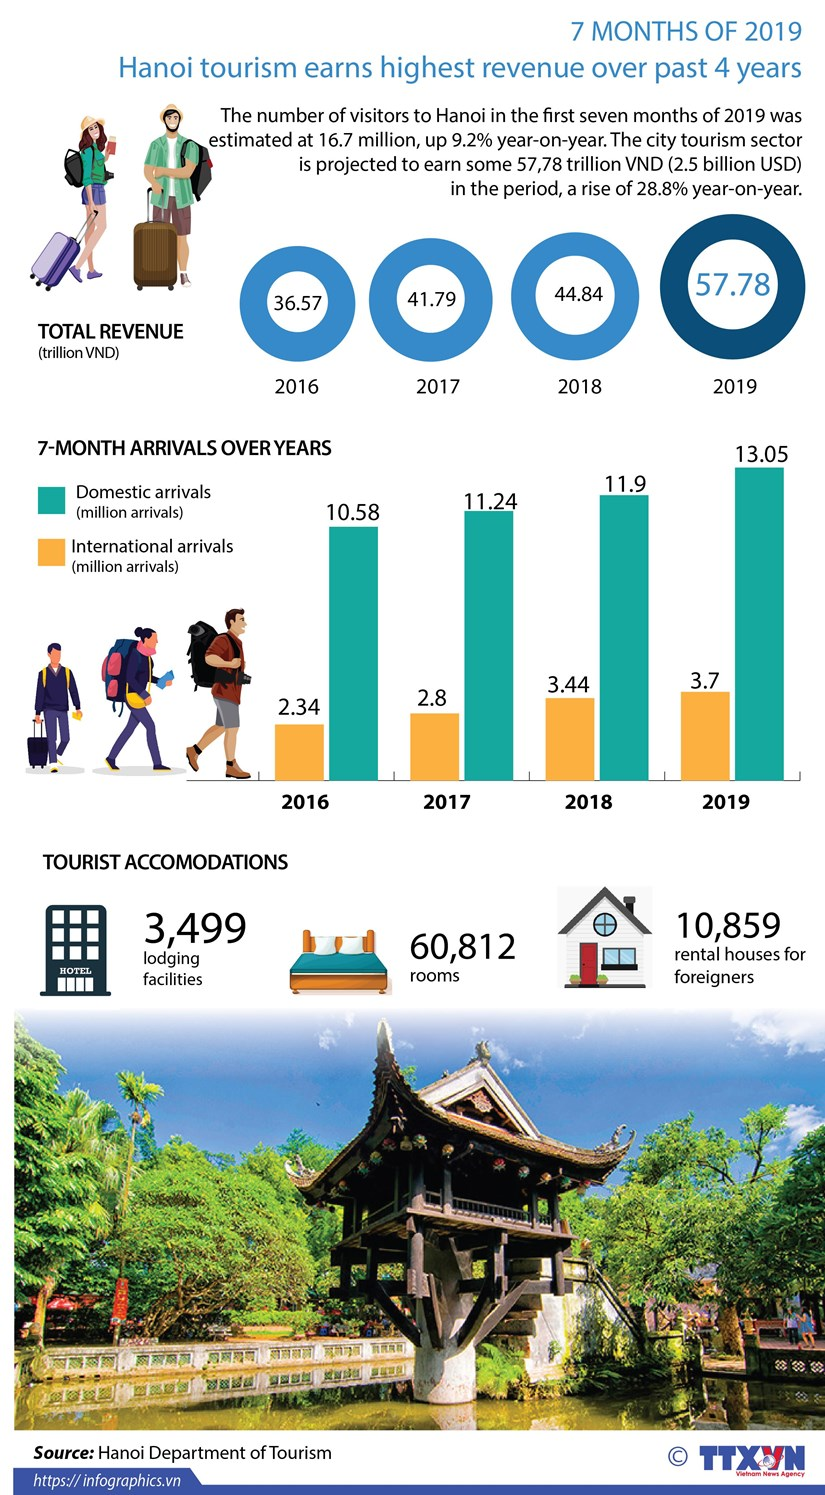 Hanoi tourism earns highest revenue over past 4 years hinh anh 1